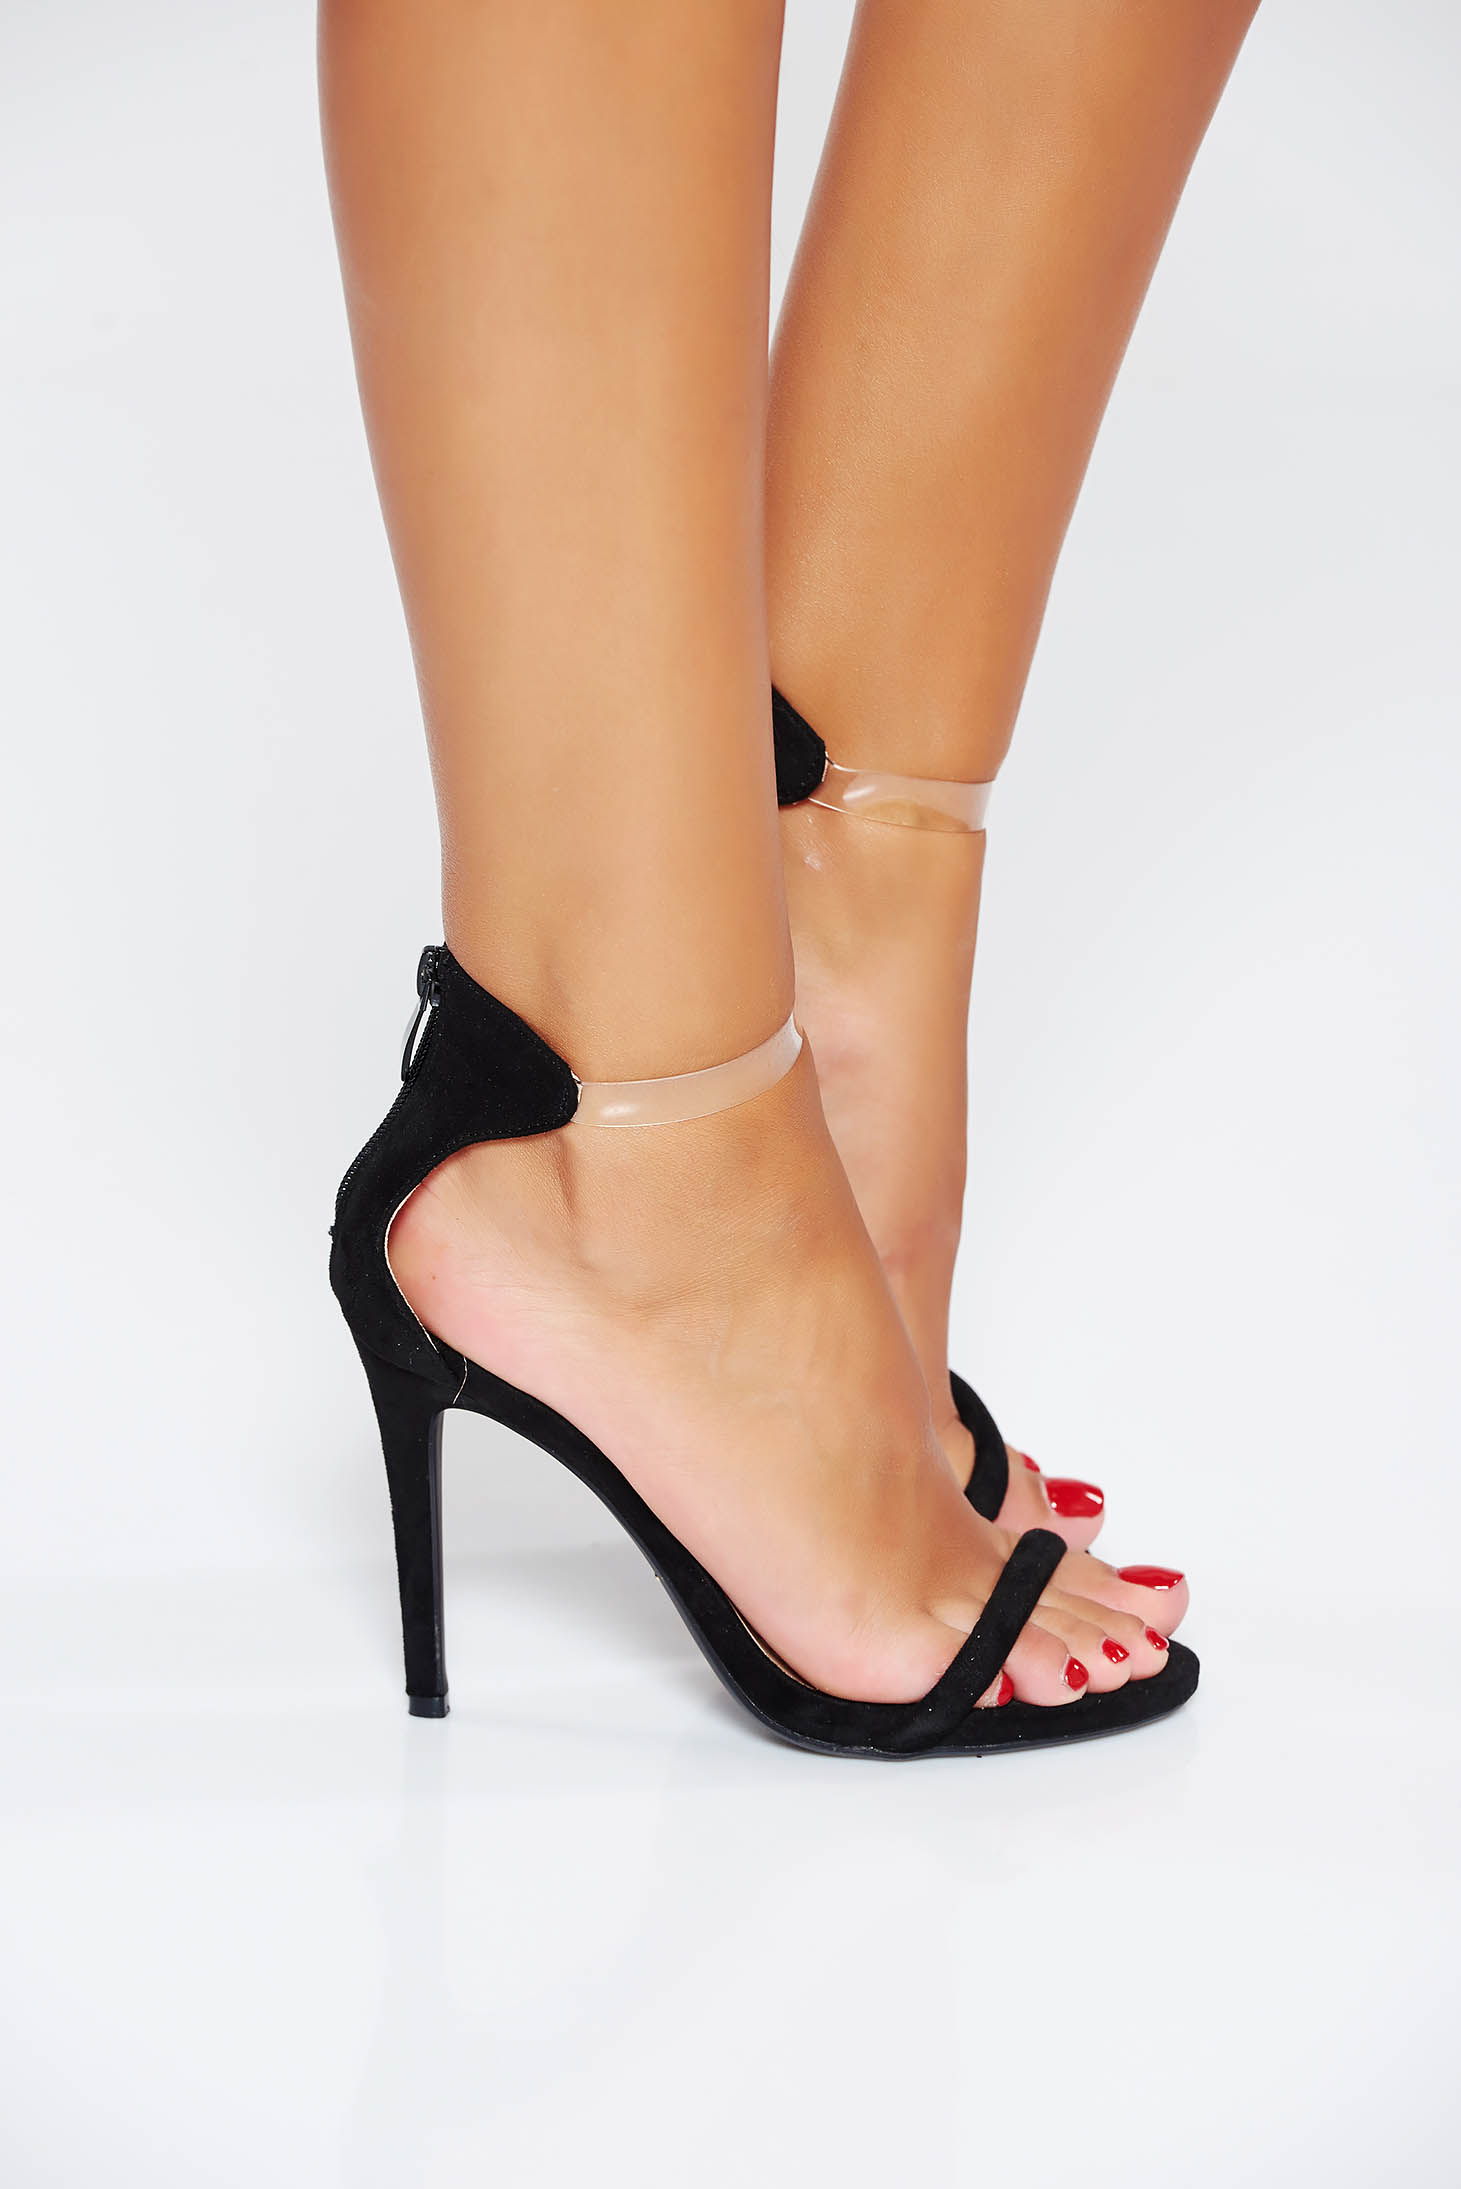 Black occasional sandals from ecological leather with thin straps